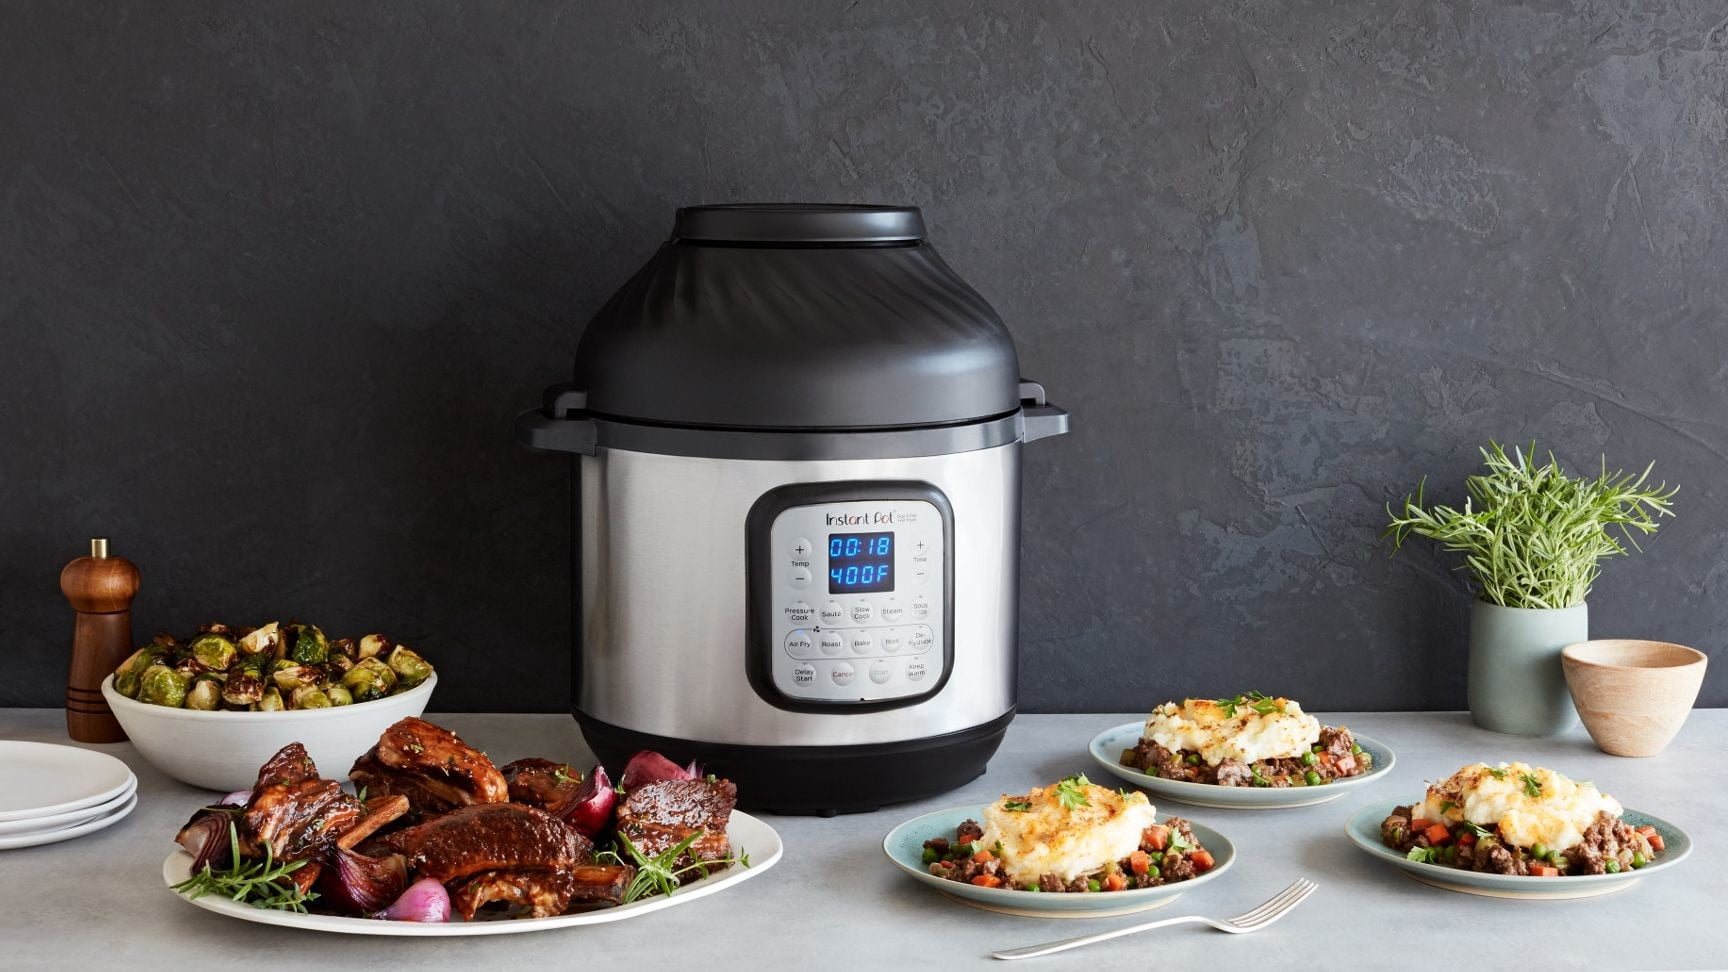 Create more healthy meals with the 11-in-1 Instant Pot Duo Crisp and Air Fryer